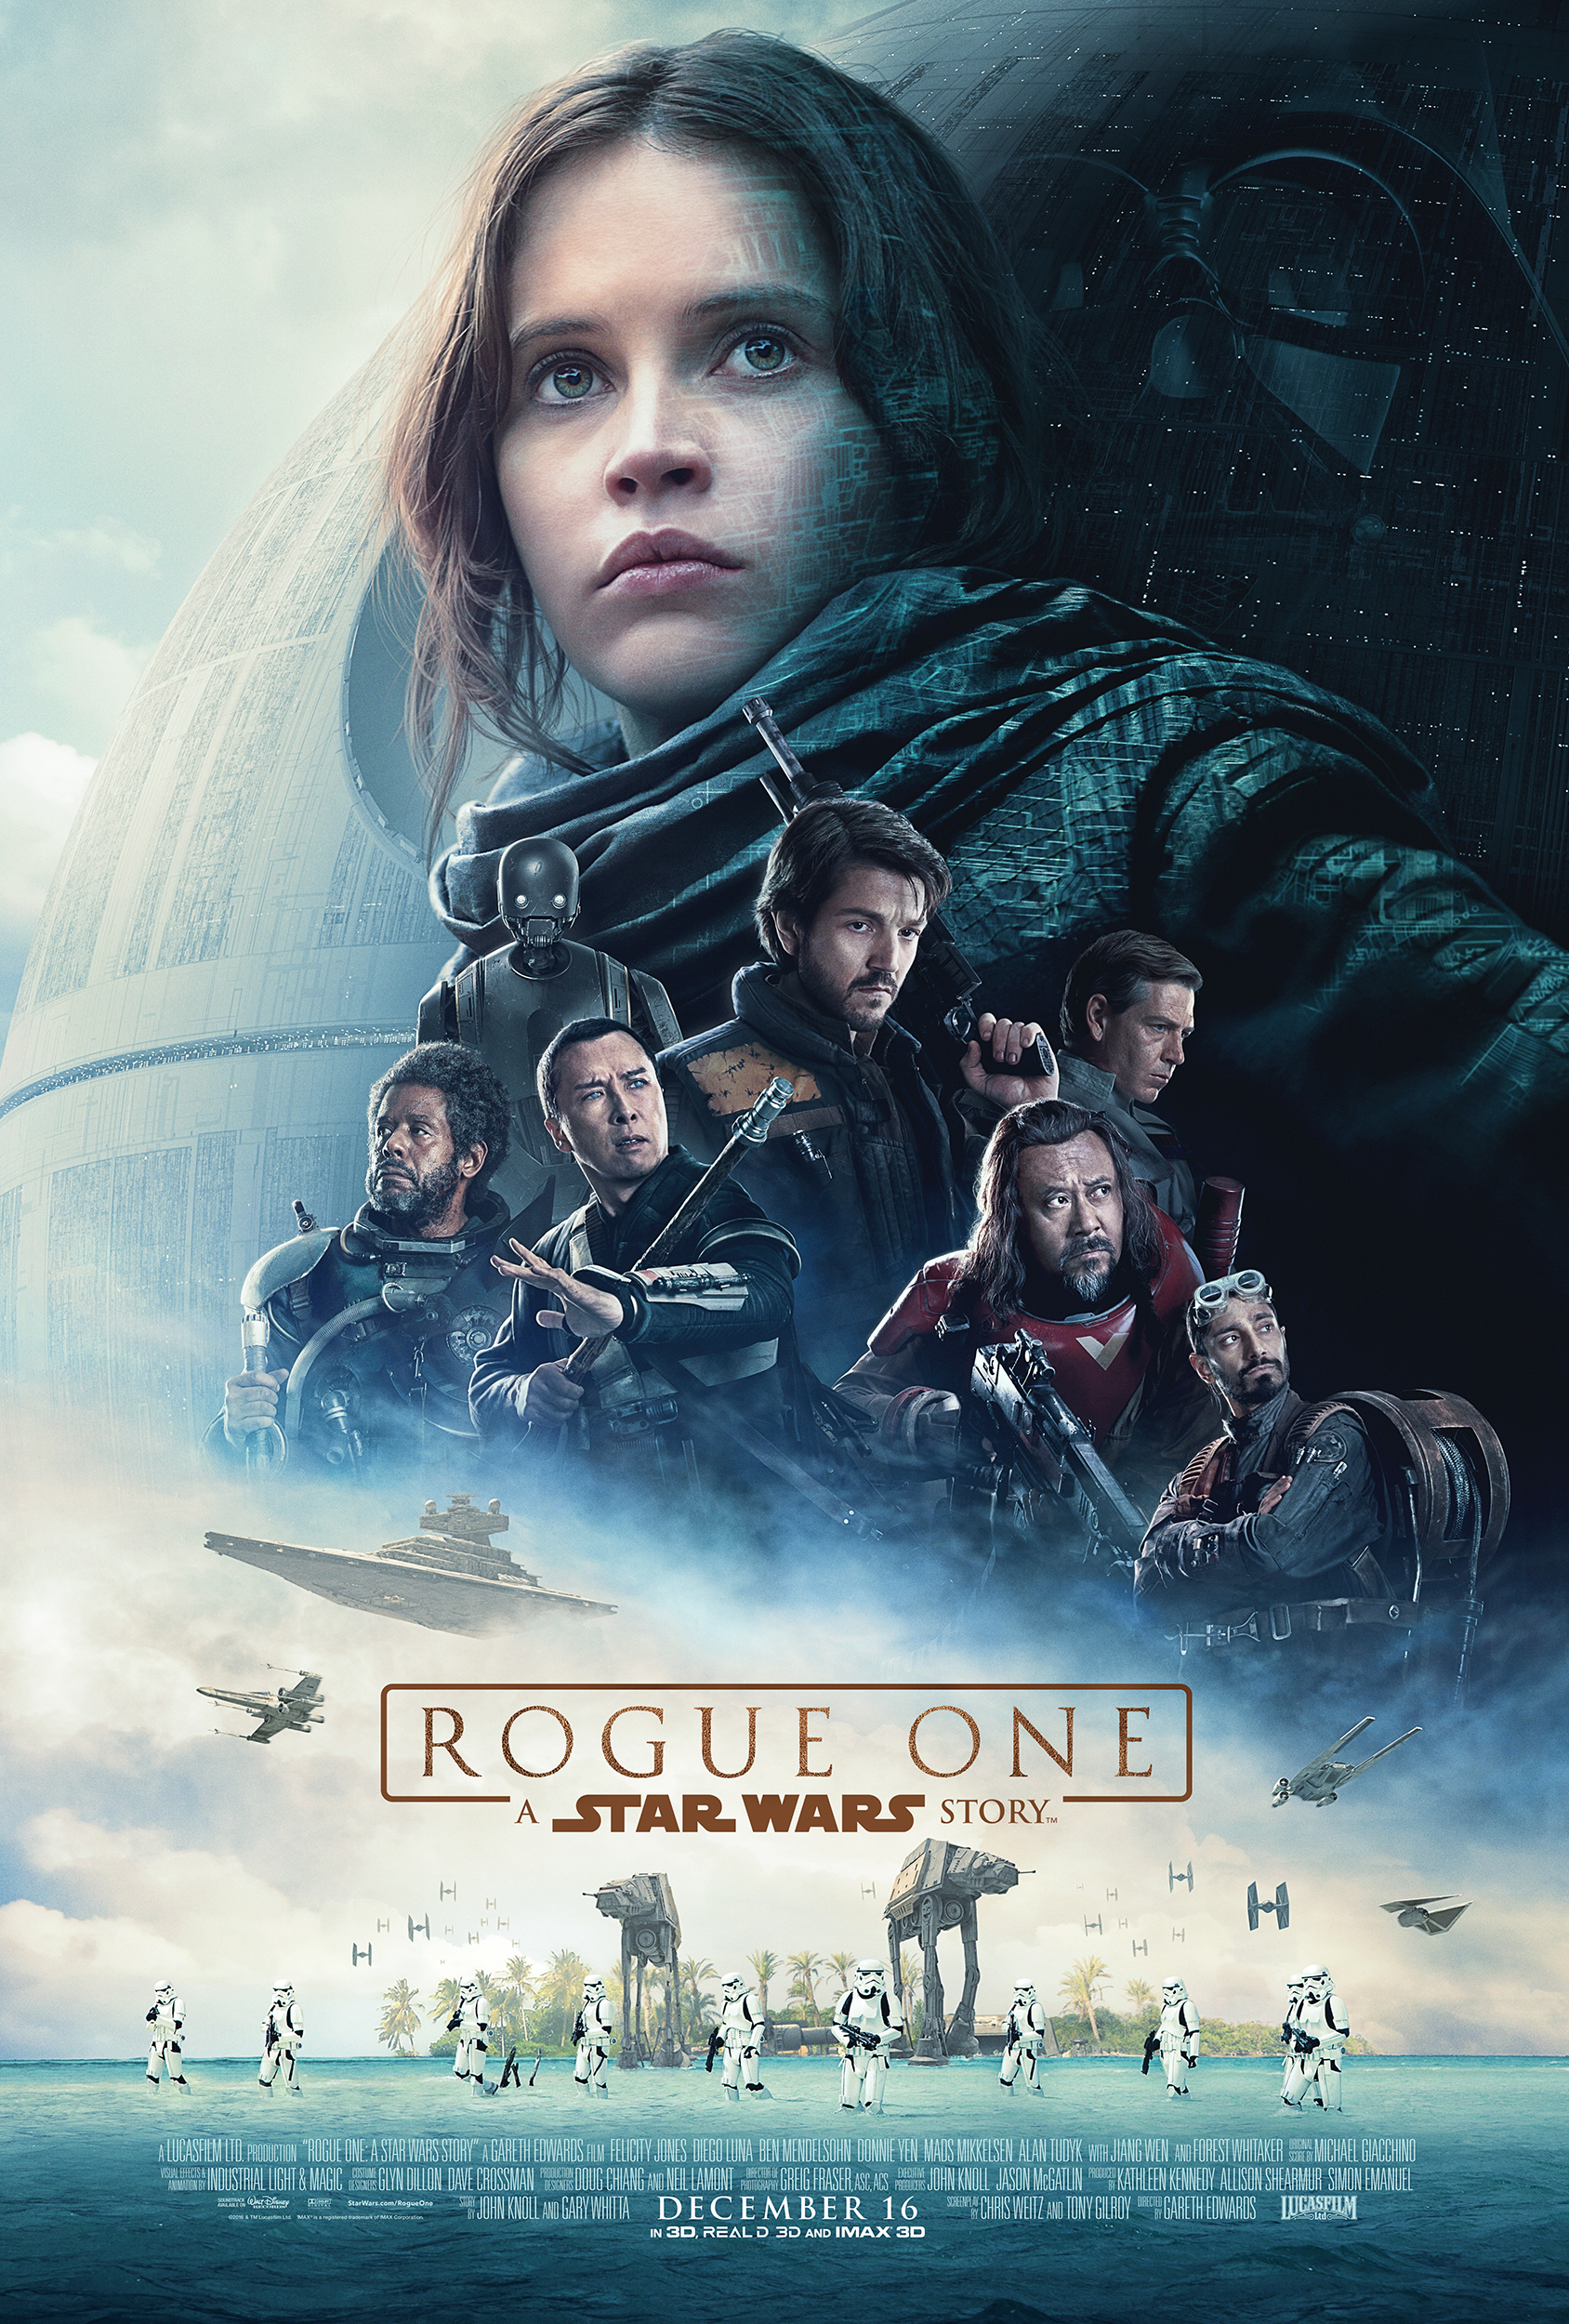 rogue-one-a-star-wars-story-theatrical-p